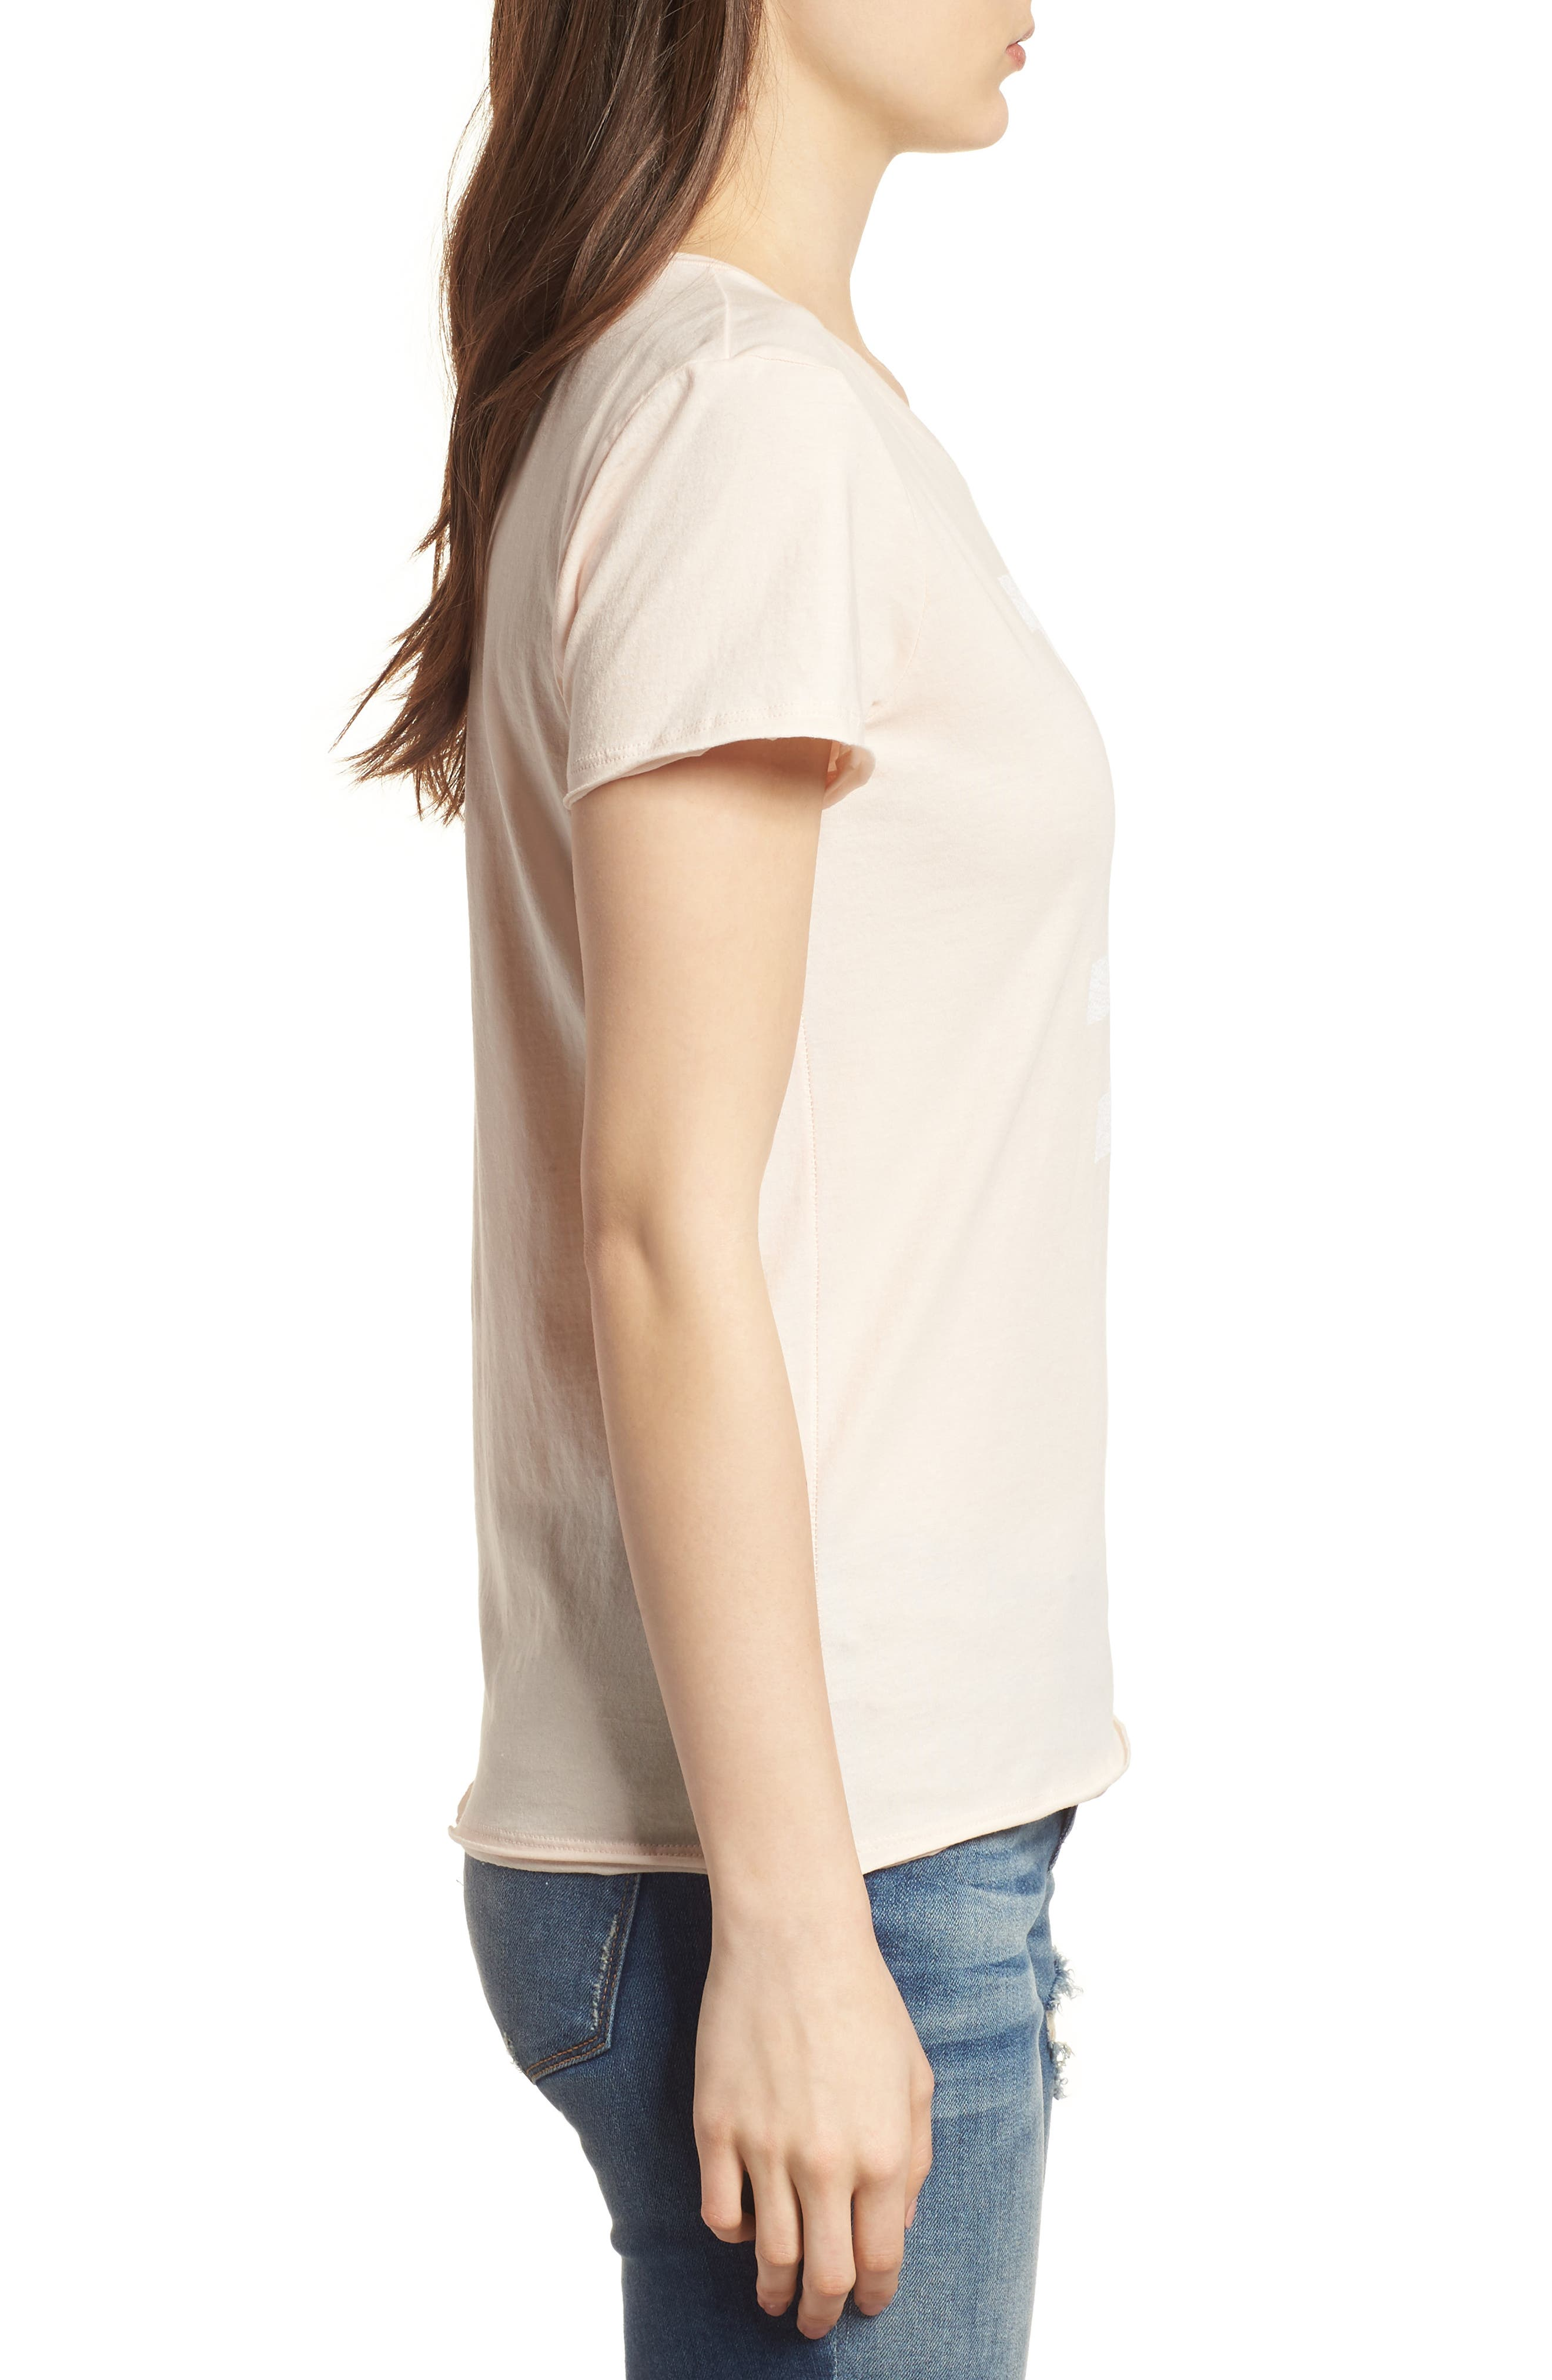 Los Angeles Dodgers Fader Letter Tee,                             Alternate thumbnail 3, color,                             Blush